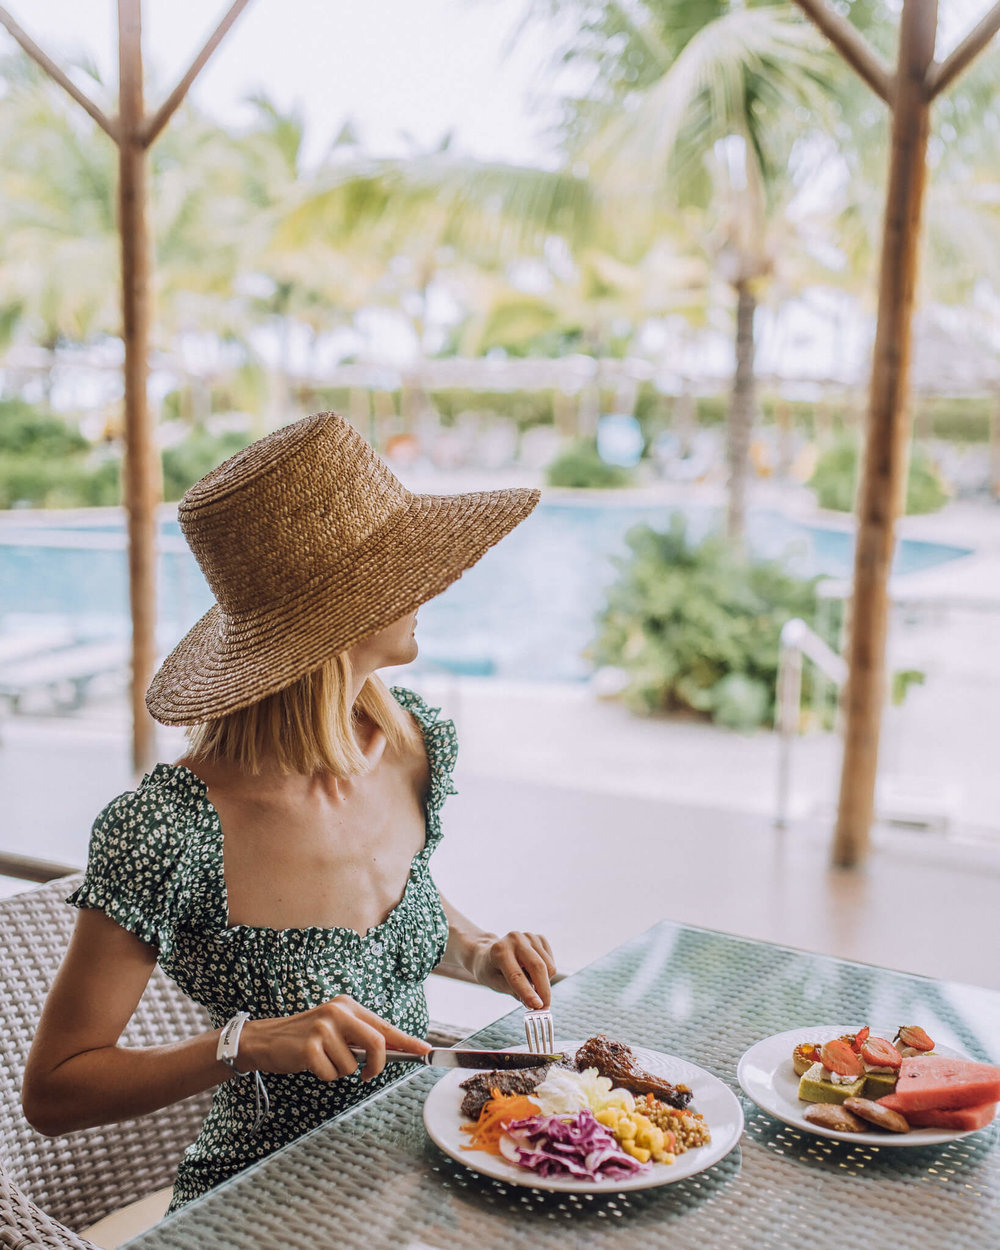 Lunch poolside was always the right choice!